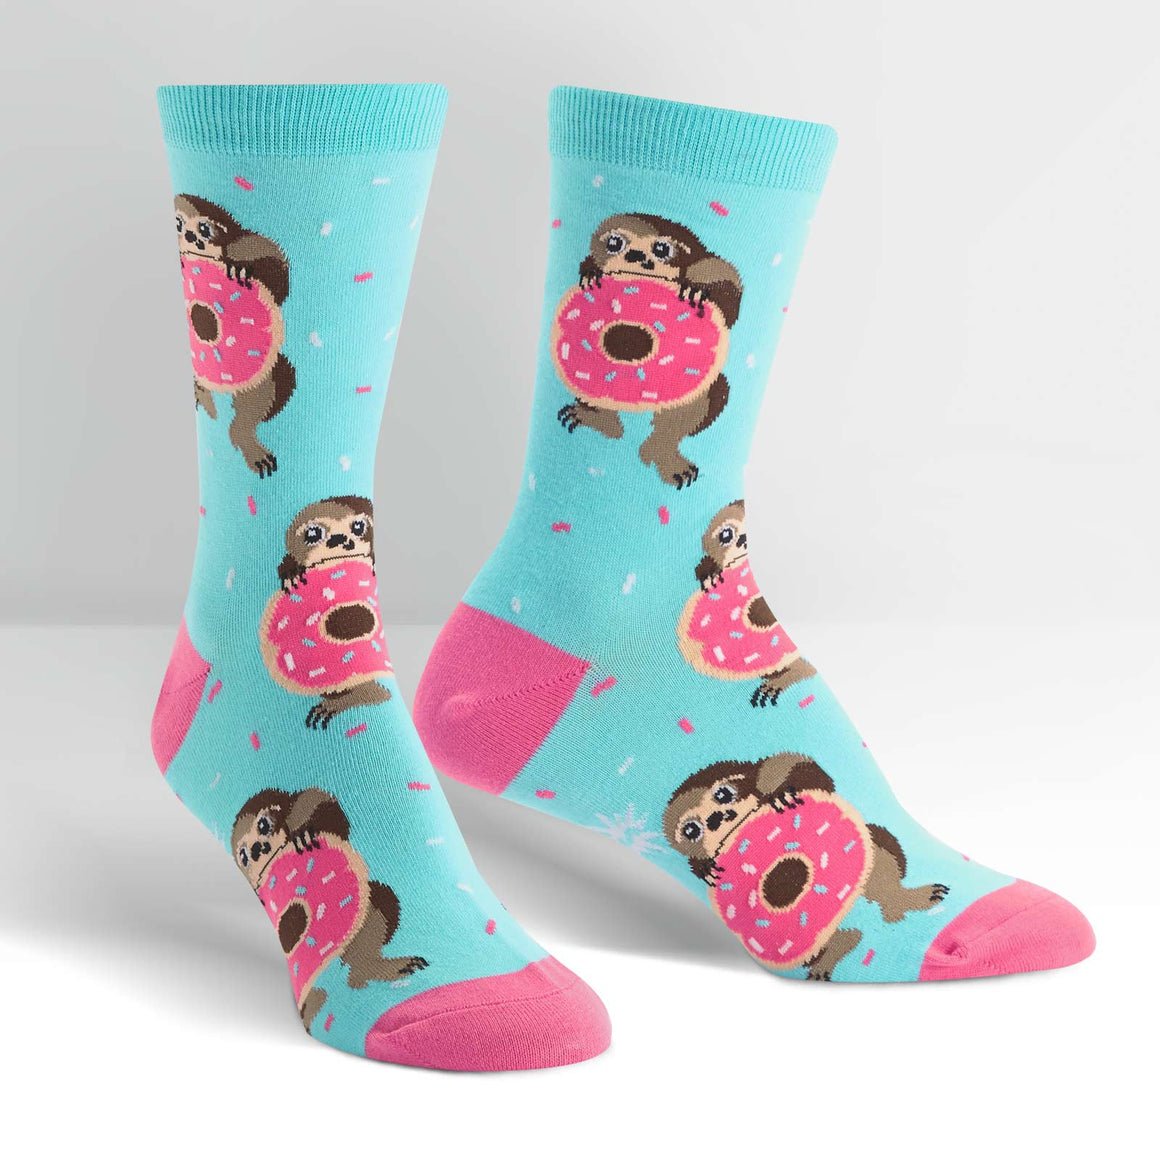 Snackin' Sloth Women's Crew Socks by Sock it To Me - Compassionate Closet